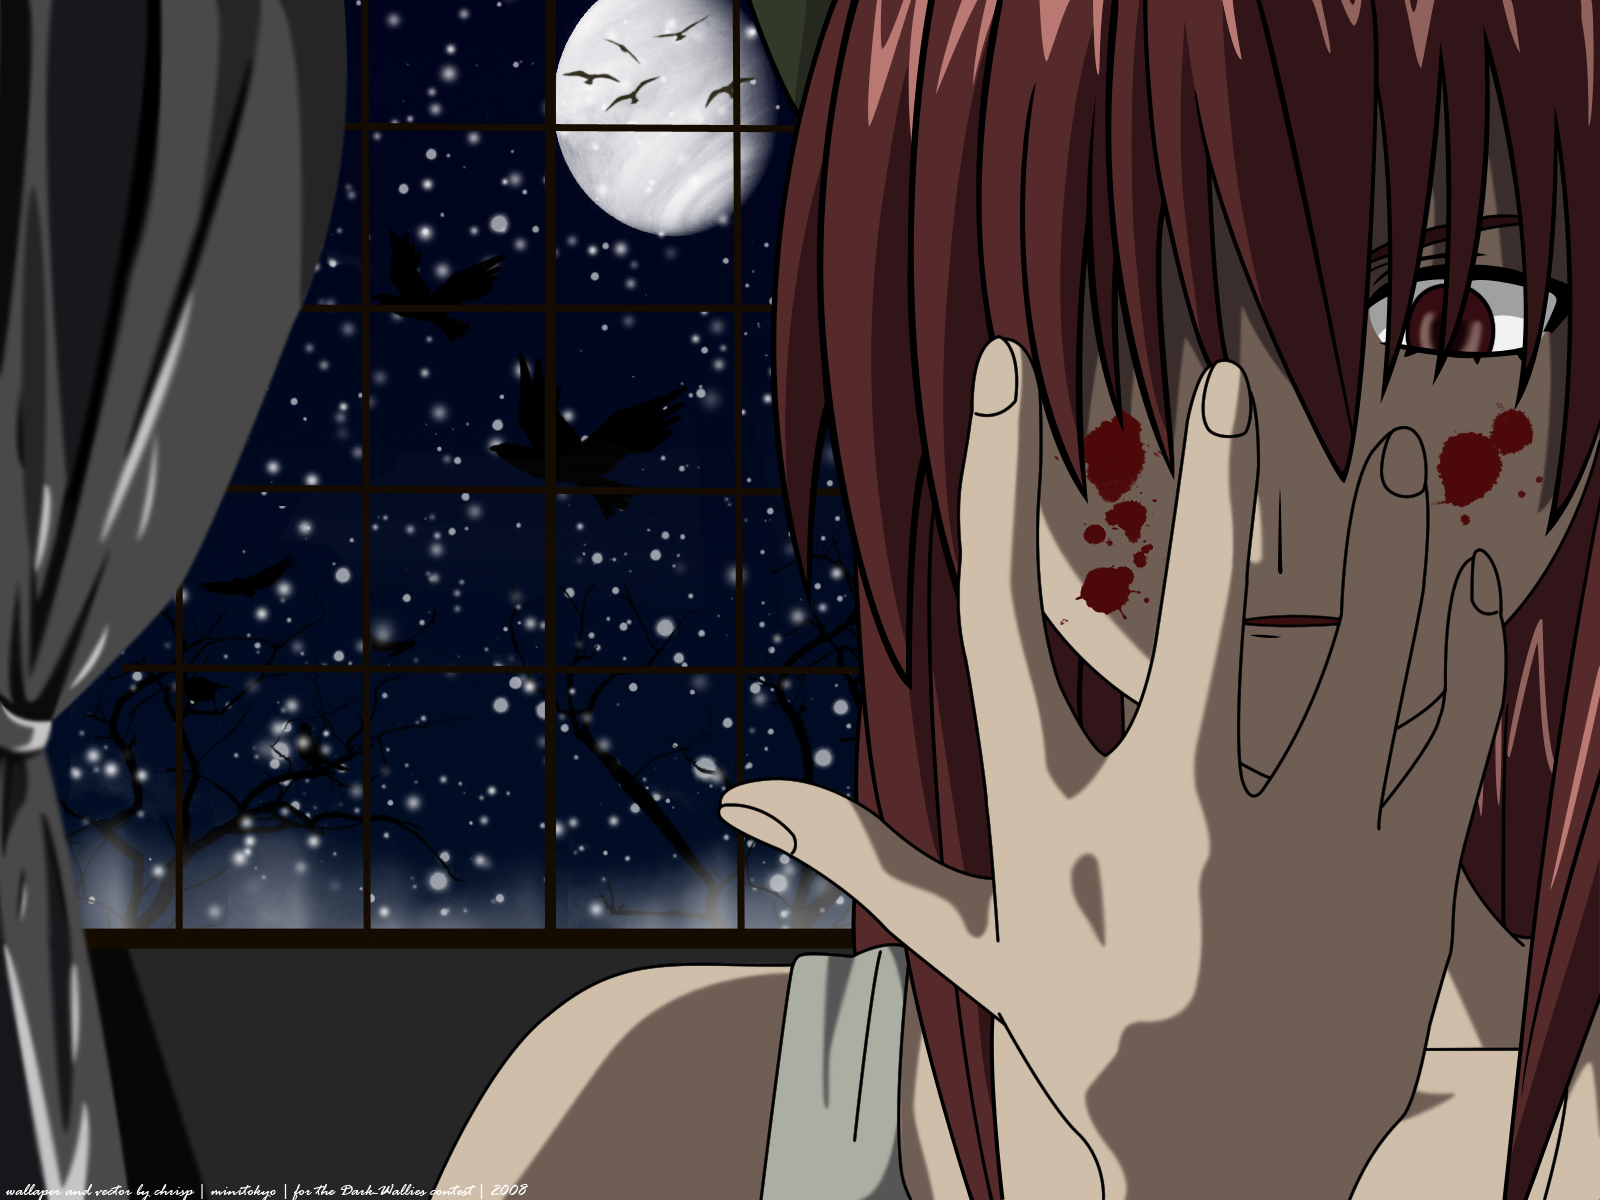 Elfen Lied Wallpaper What Have I Done Minitokyo